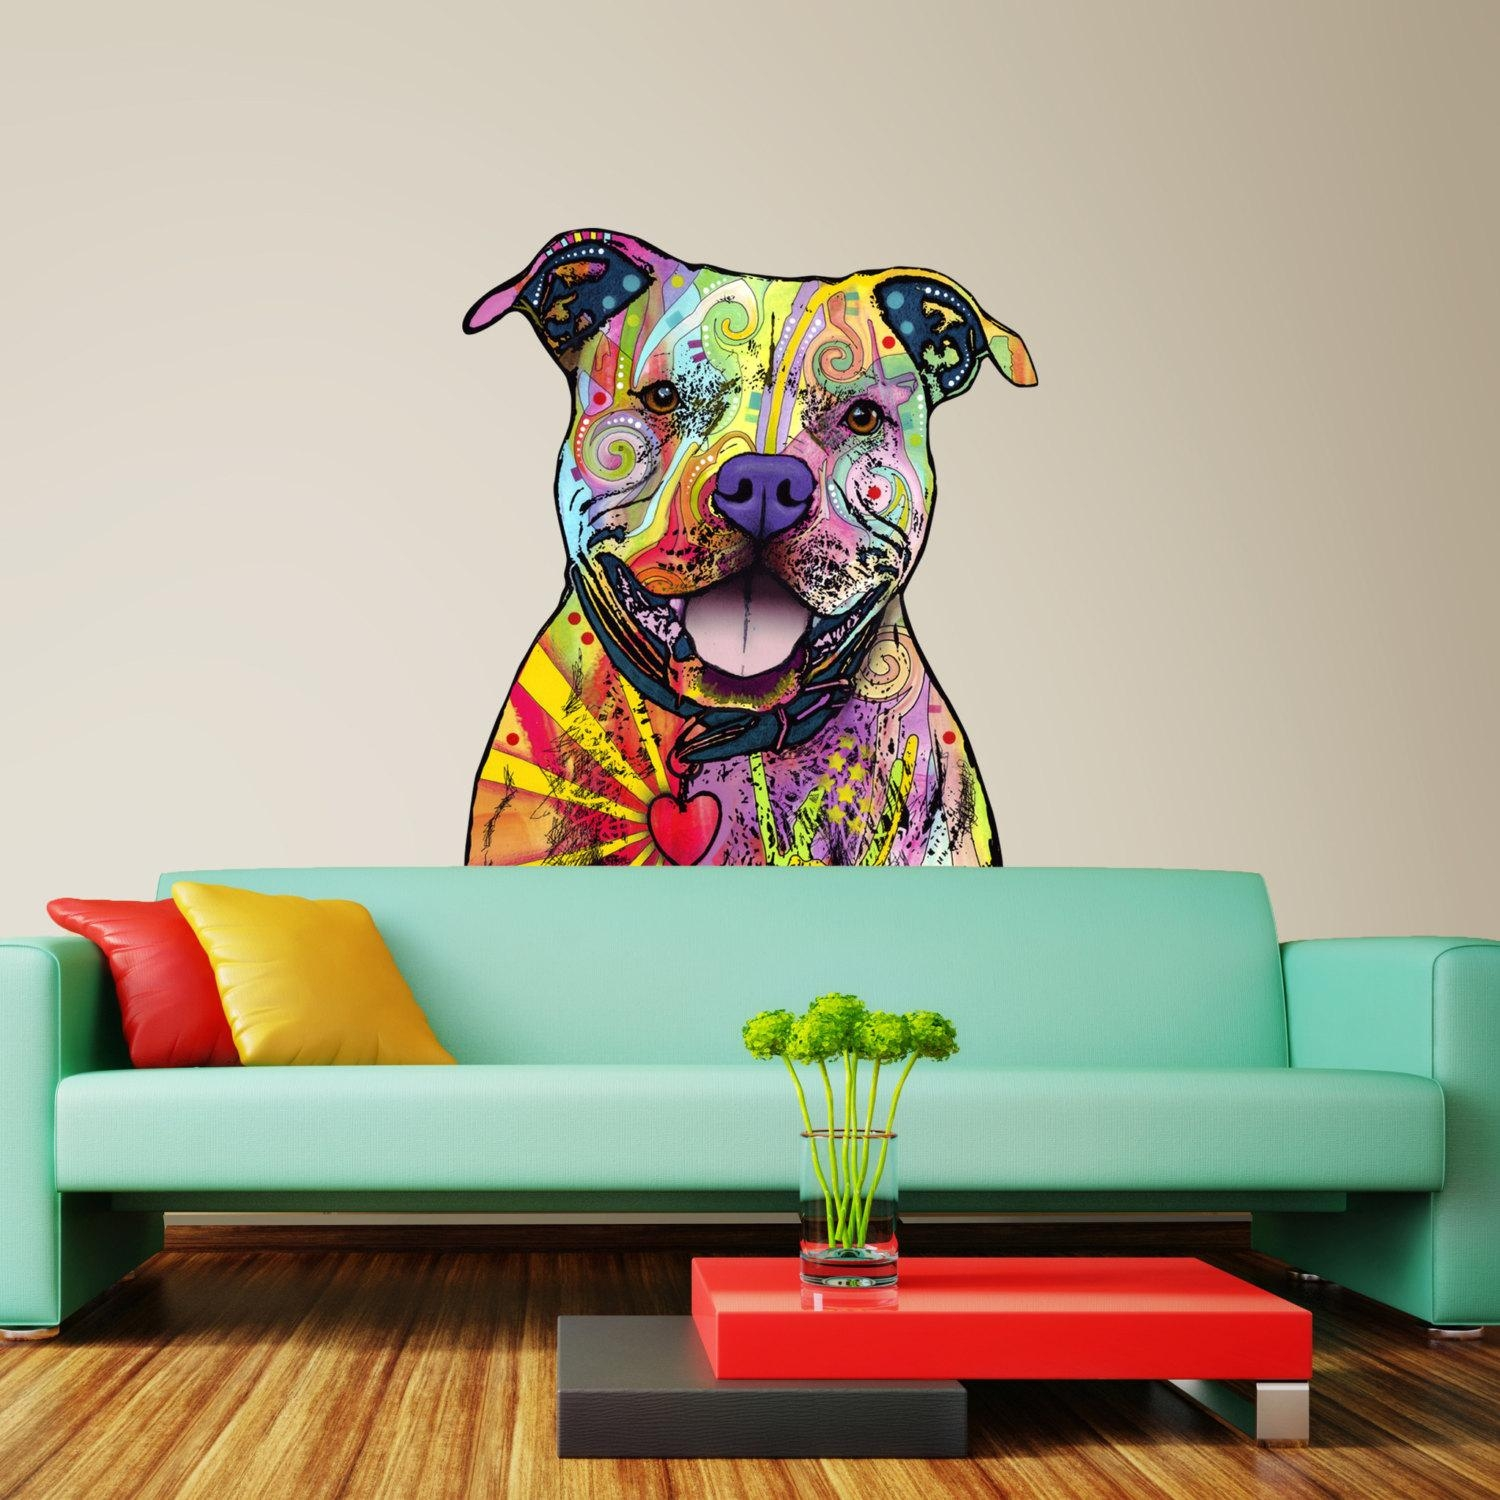 Pit Bull Wall Sticker Cut Out Dean Russo Pop Art Within Pitbull Wall Art (Image 10 of 20)